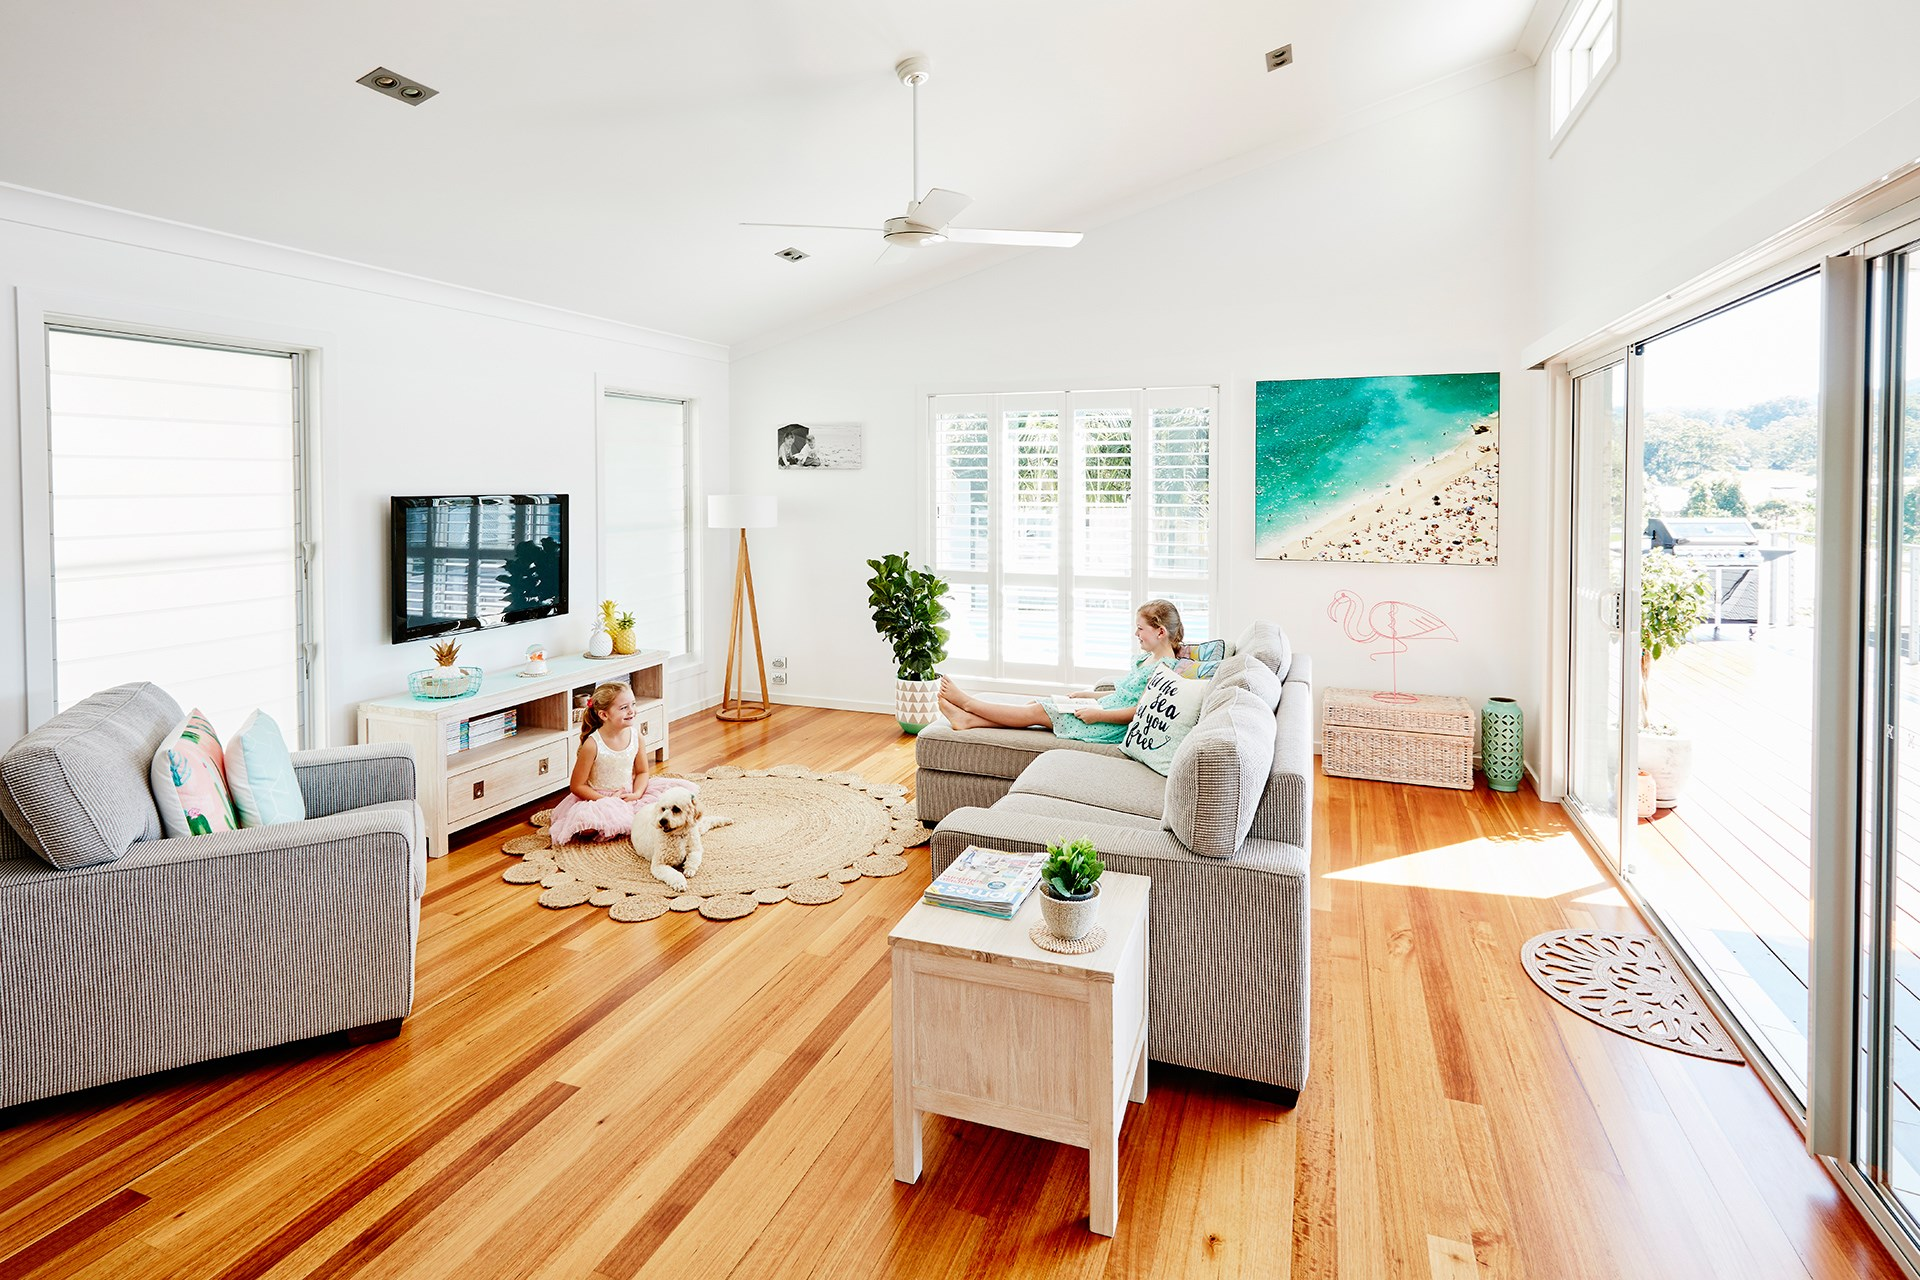 **Sharna Lyndsay** A sea change from Melbourne to Coffs Harbour landed this family a bright and breezy coastal home with plenty of room to grow. [See the full home here](http://www.homestolove.com.au/a-sea-change-with-style-4509) or [vote for this home](http://www.homestolove.com.au/homes-reader-home-of-the-year-4499).